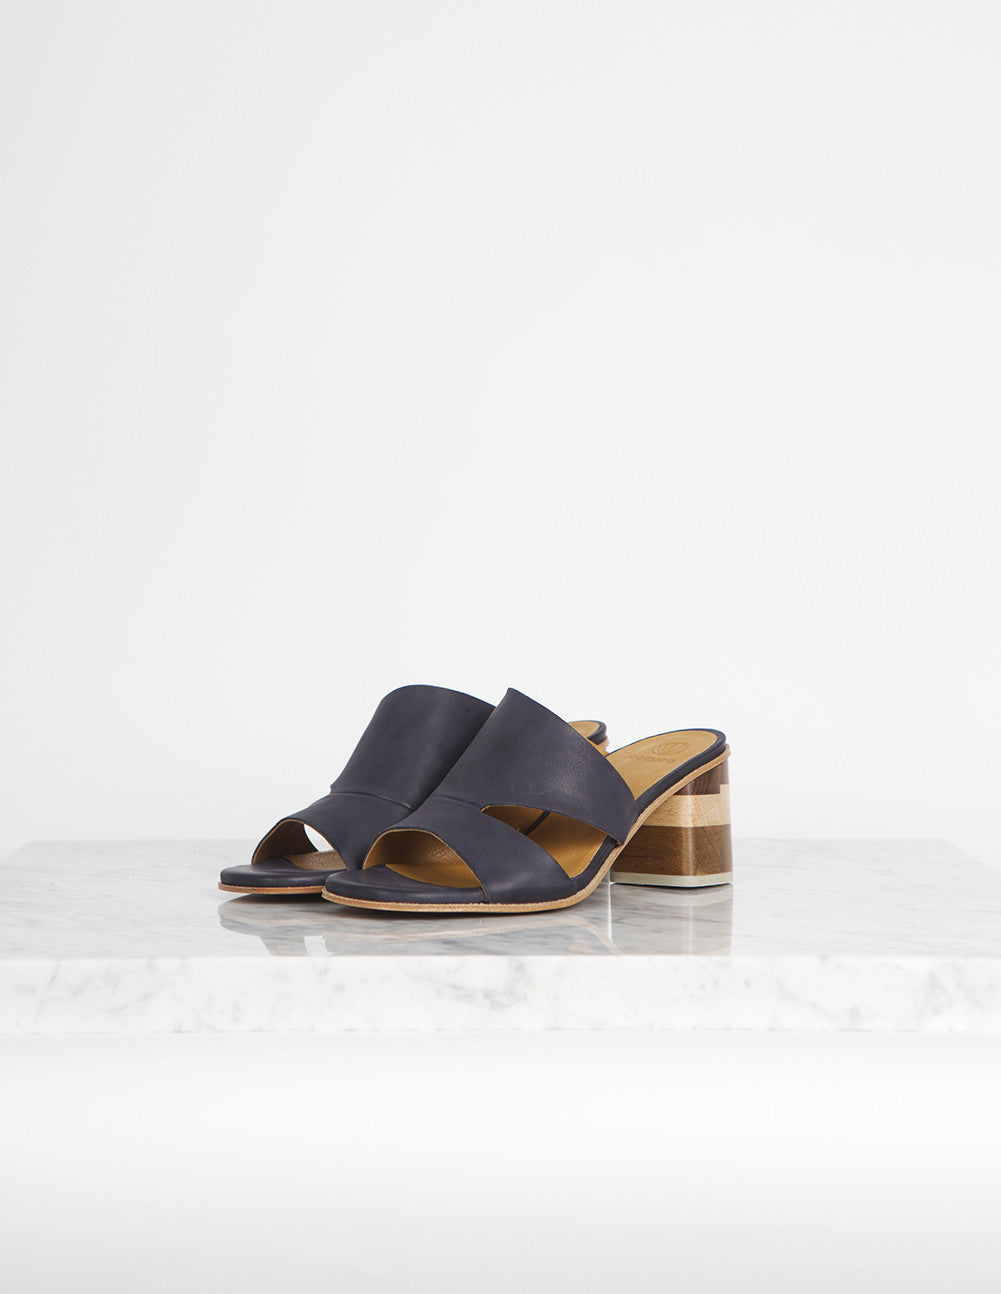 Barrel Sandal Heel